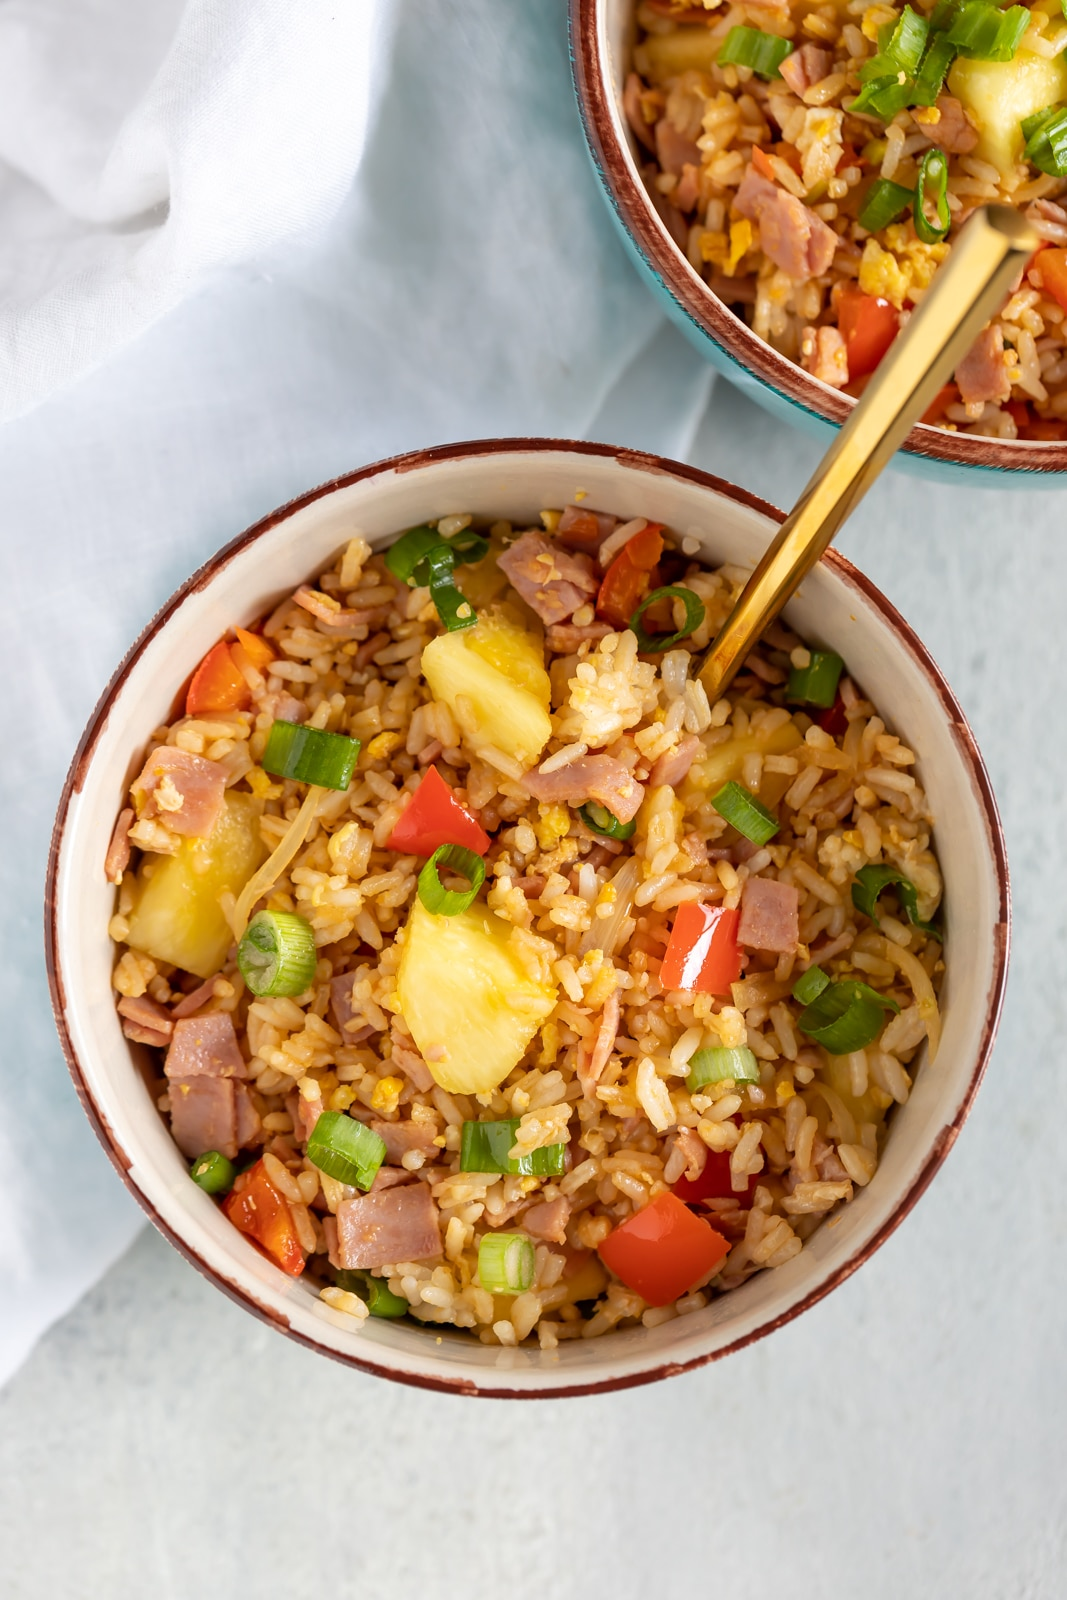 Hawaiian Fried Rice in a blue bowl.